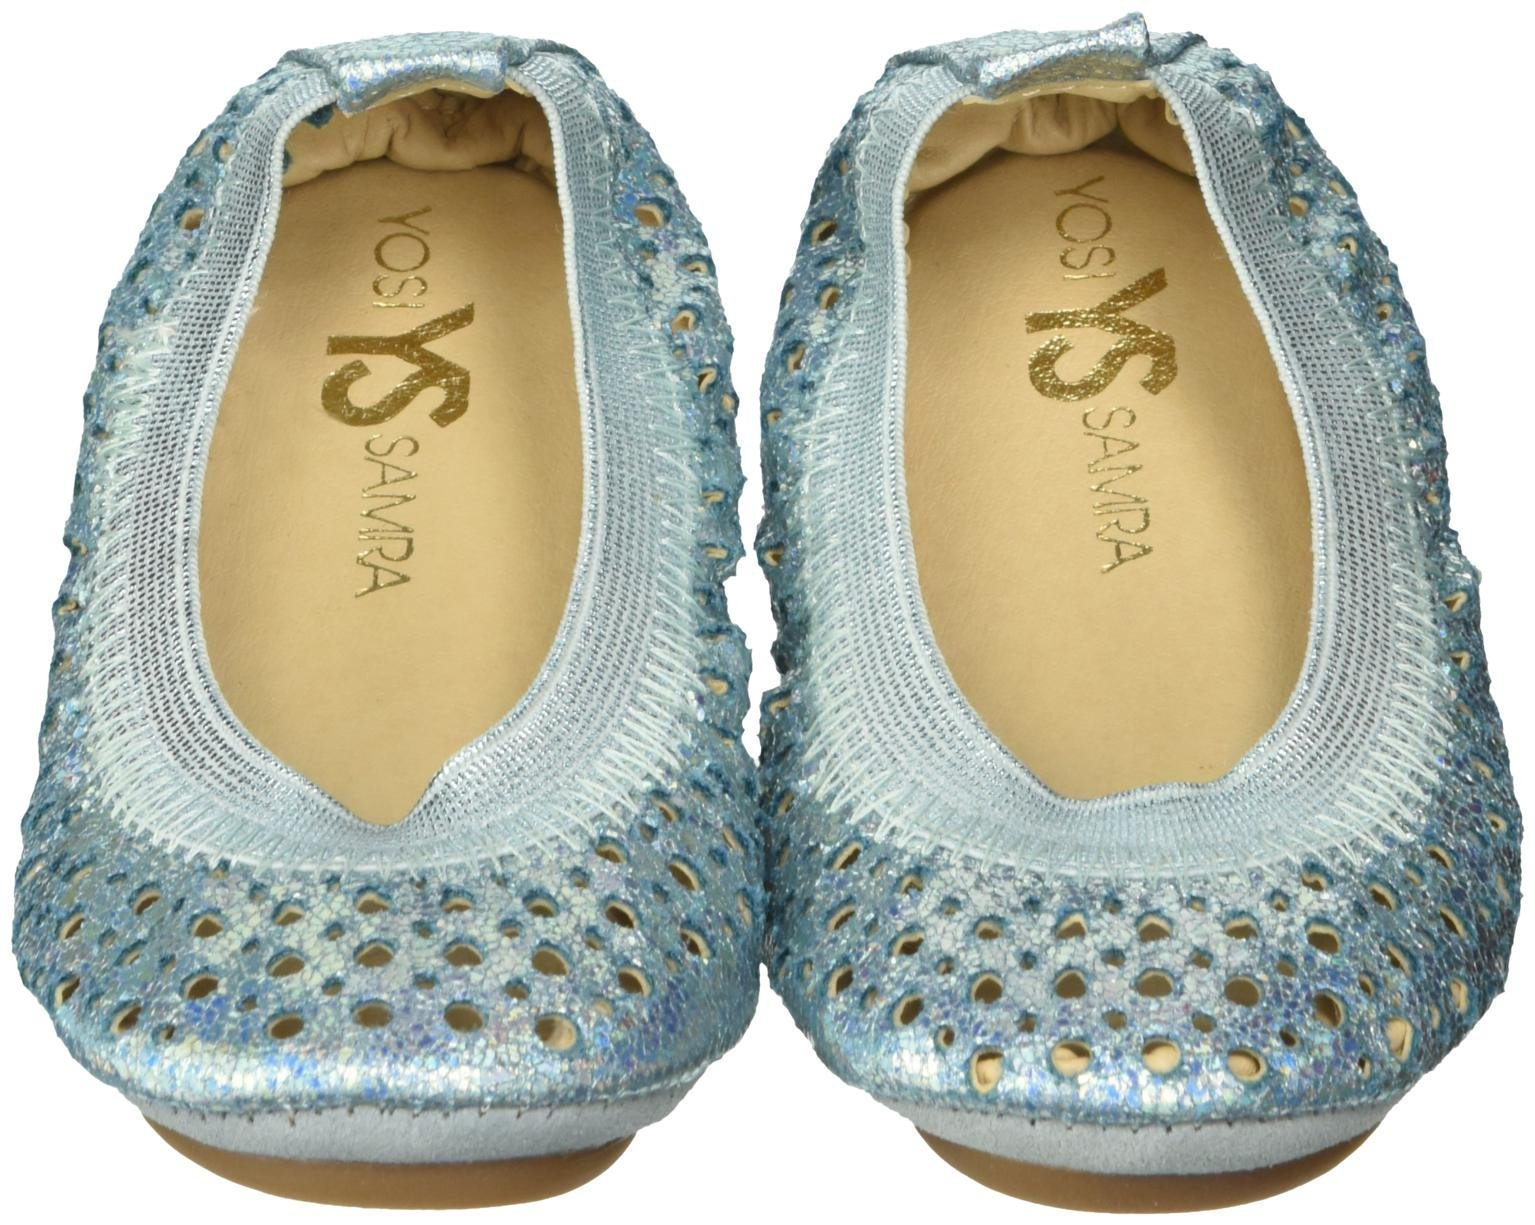 Yosi Samra Girls Sammie Iridescent Crinkle Slip on Ballet Flat (Toddler), Alaskan Blue, 9 M US Toddler by Yosi Samra